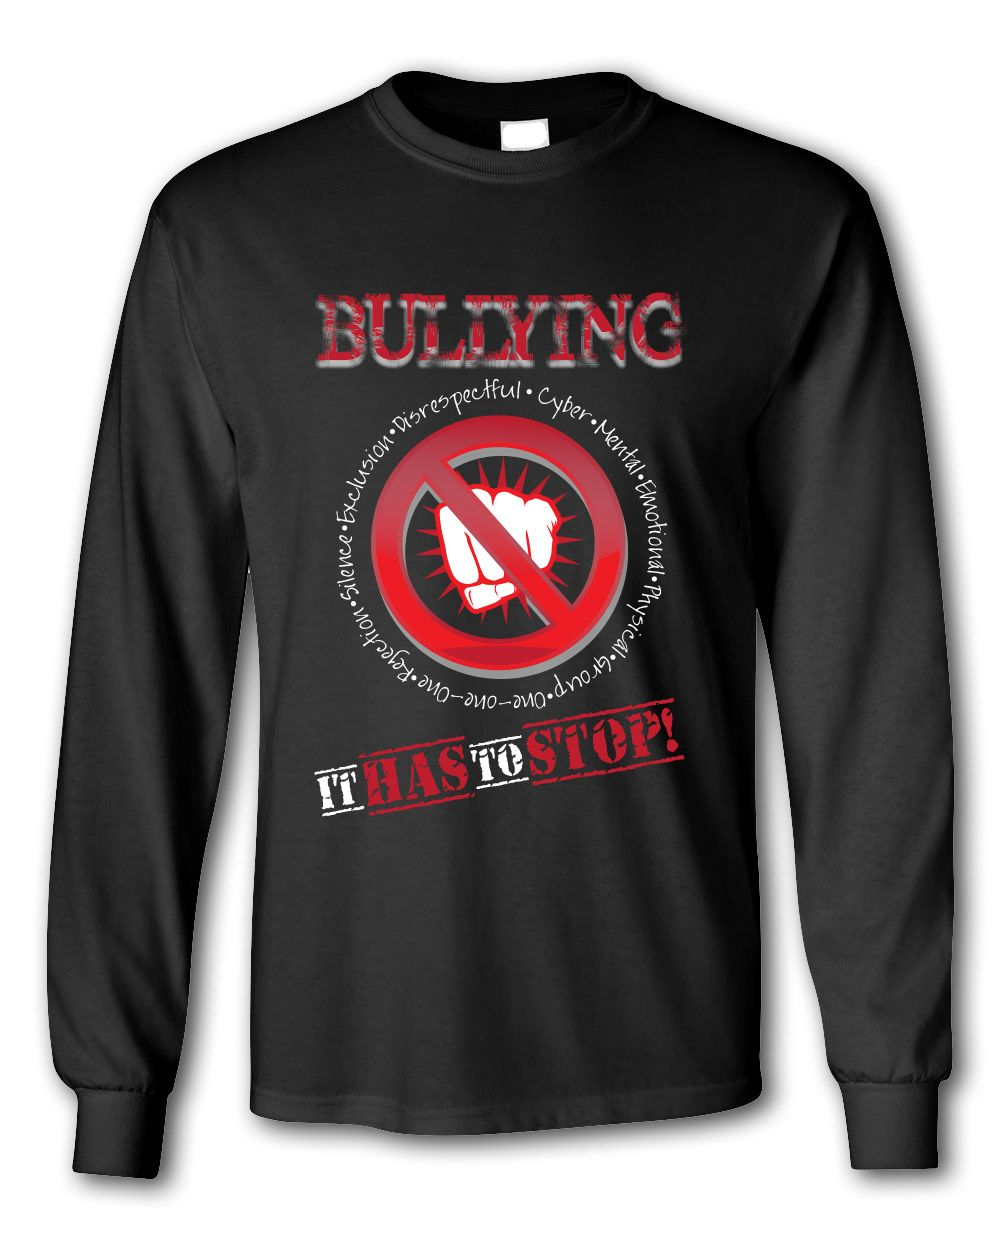 89a1f2337af Anti-Bullying T-Shirt Design